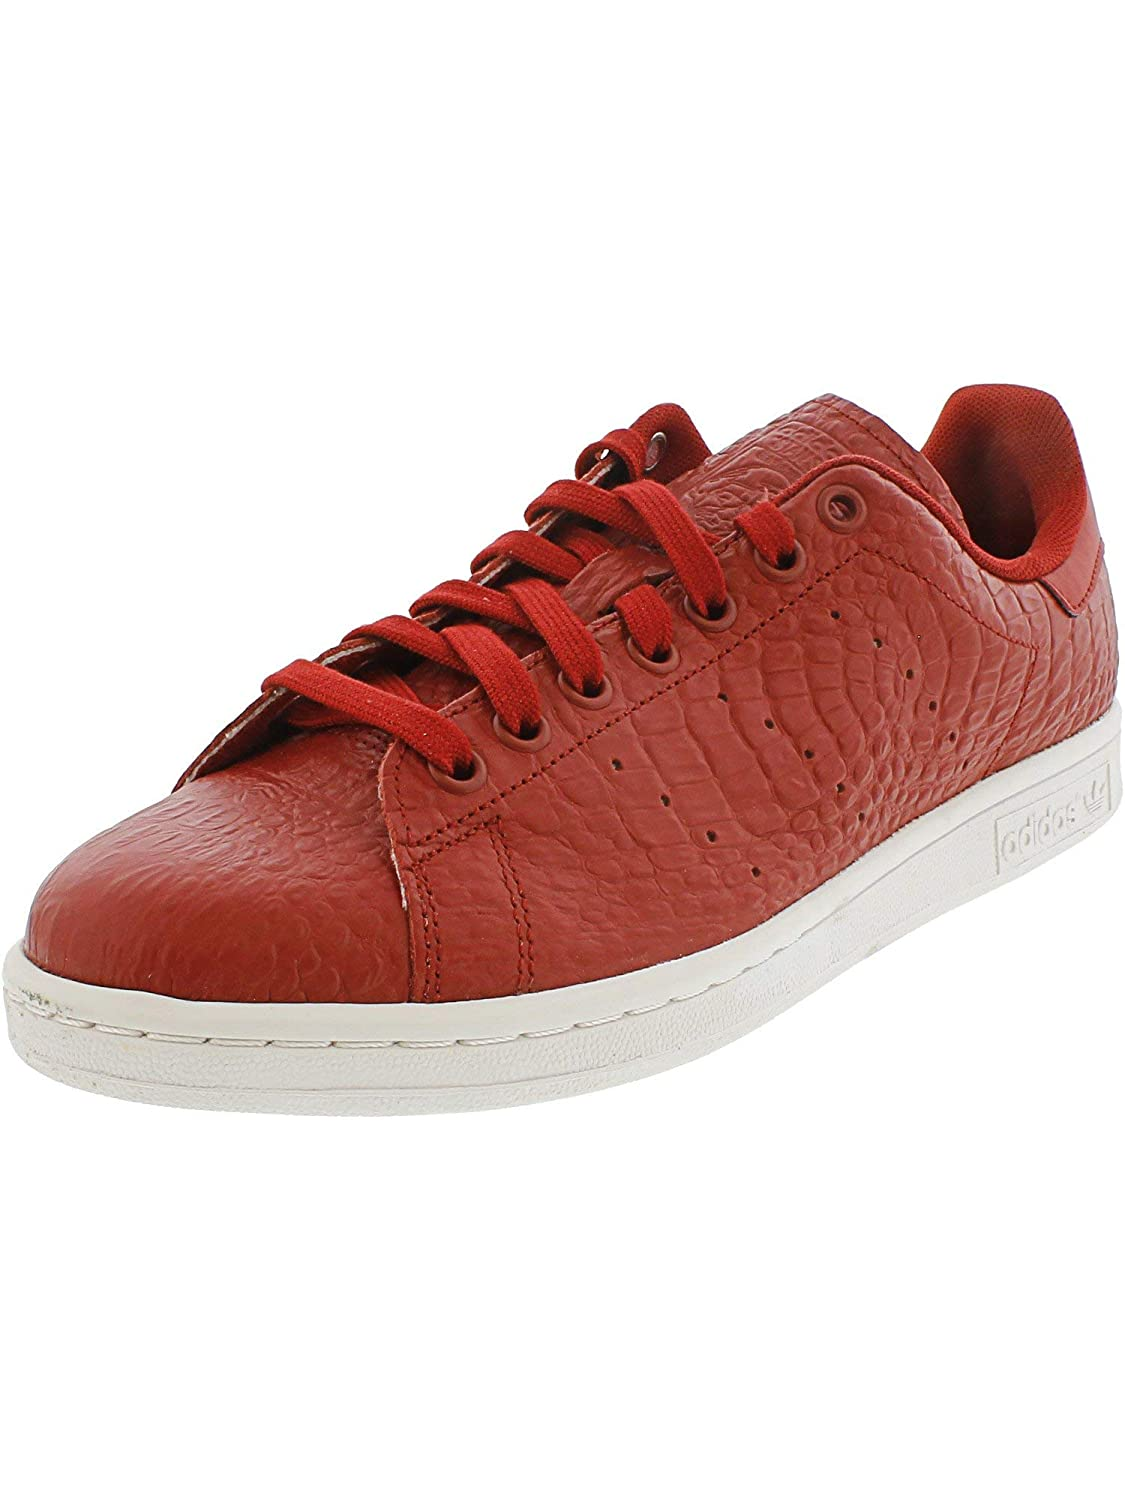 Red White Adidas ORIGINALS Men's Stan Smith shoes